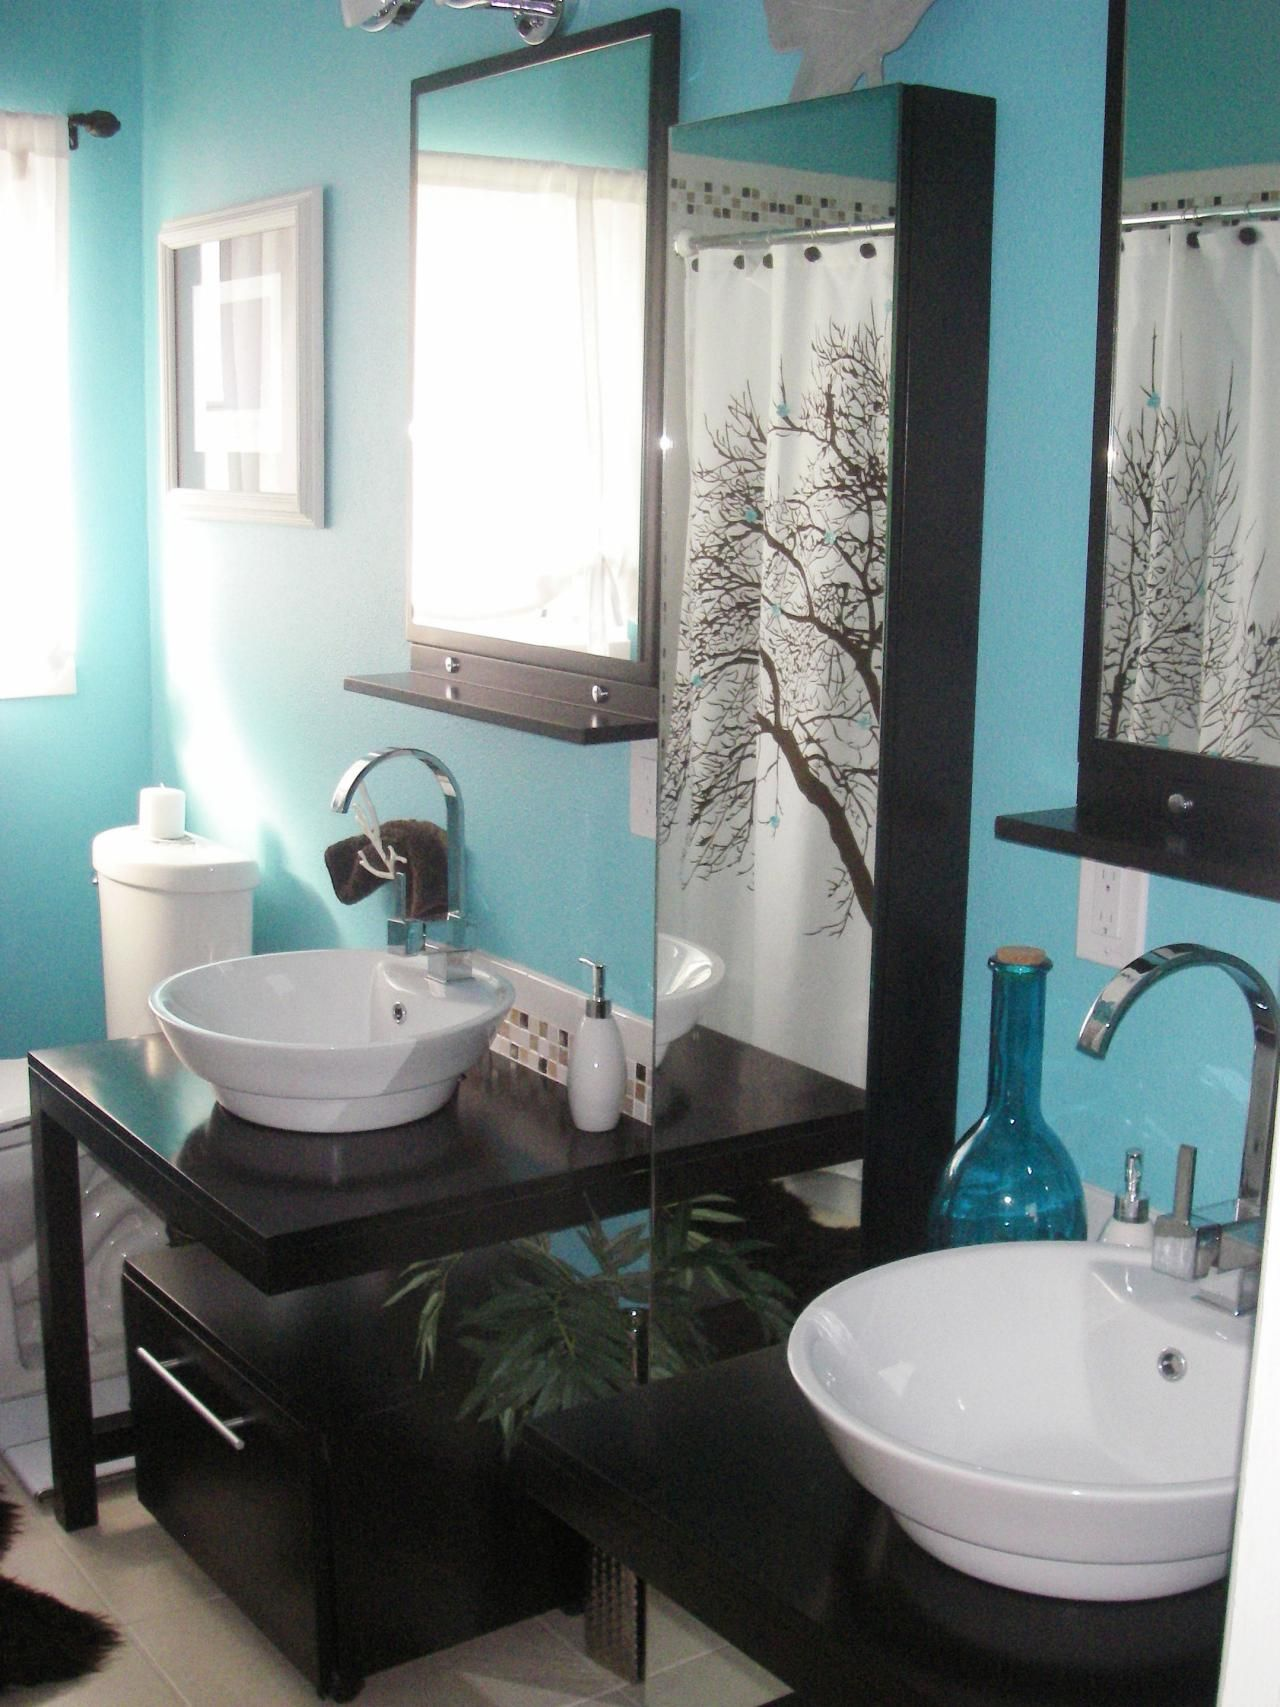 Colorful Bathrooms From HGTV Fans | FURNITURE, WALLS, FLOORS... DUST ...